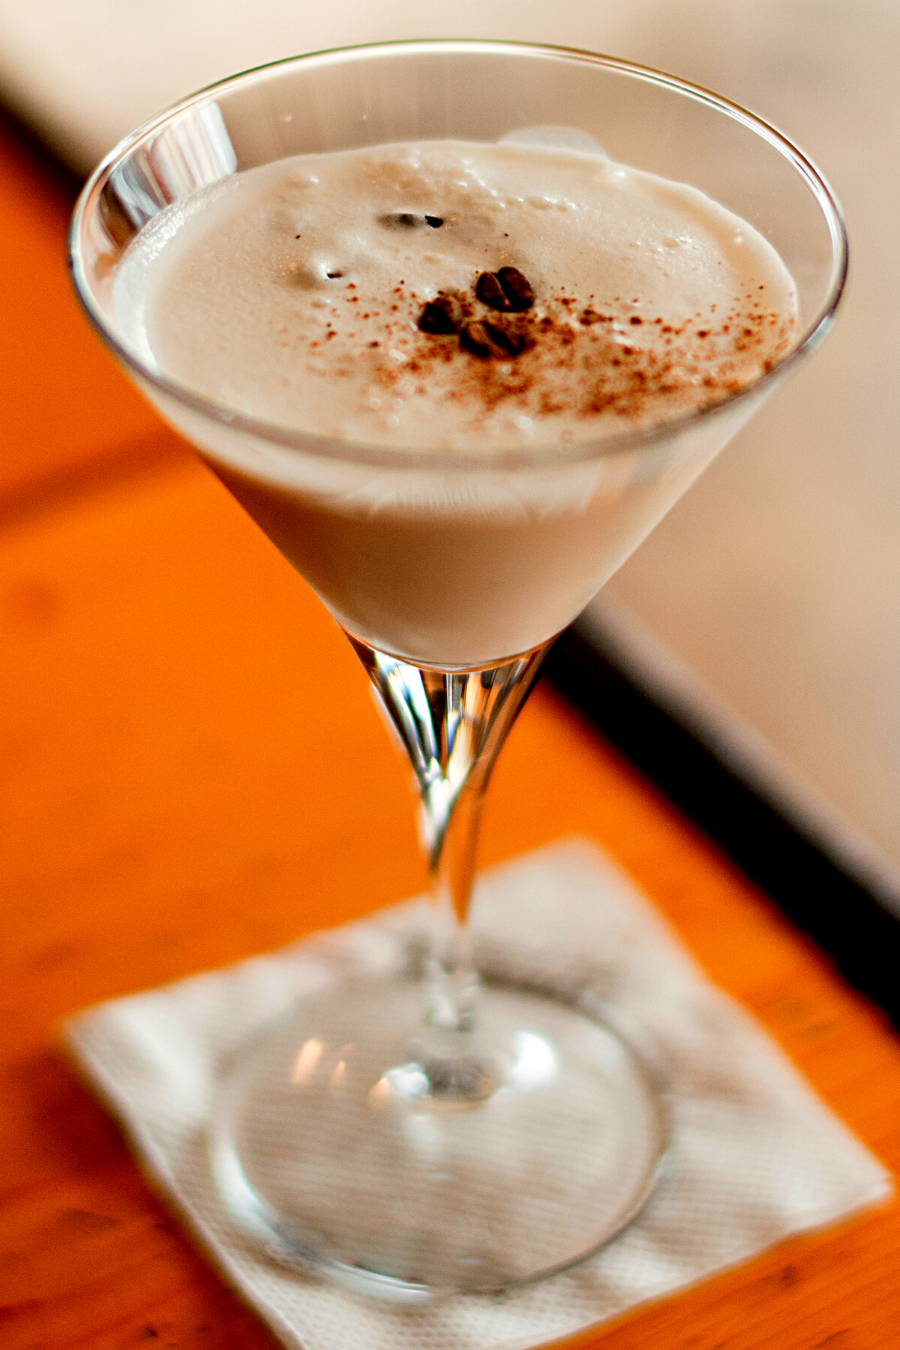 Boston's Espresso Dave Coffee Catering shares his favorite espresso martini mocktail recipe! Three ingredients is all you need to whip up this Christmas holiday and winter seasonal favorite! Click for this delicious coffee drink recipe! www.espressodave.com